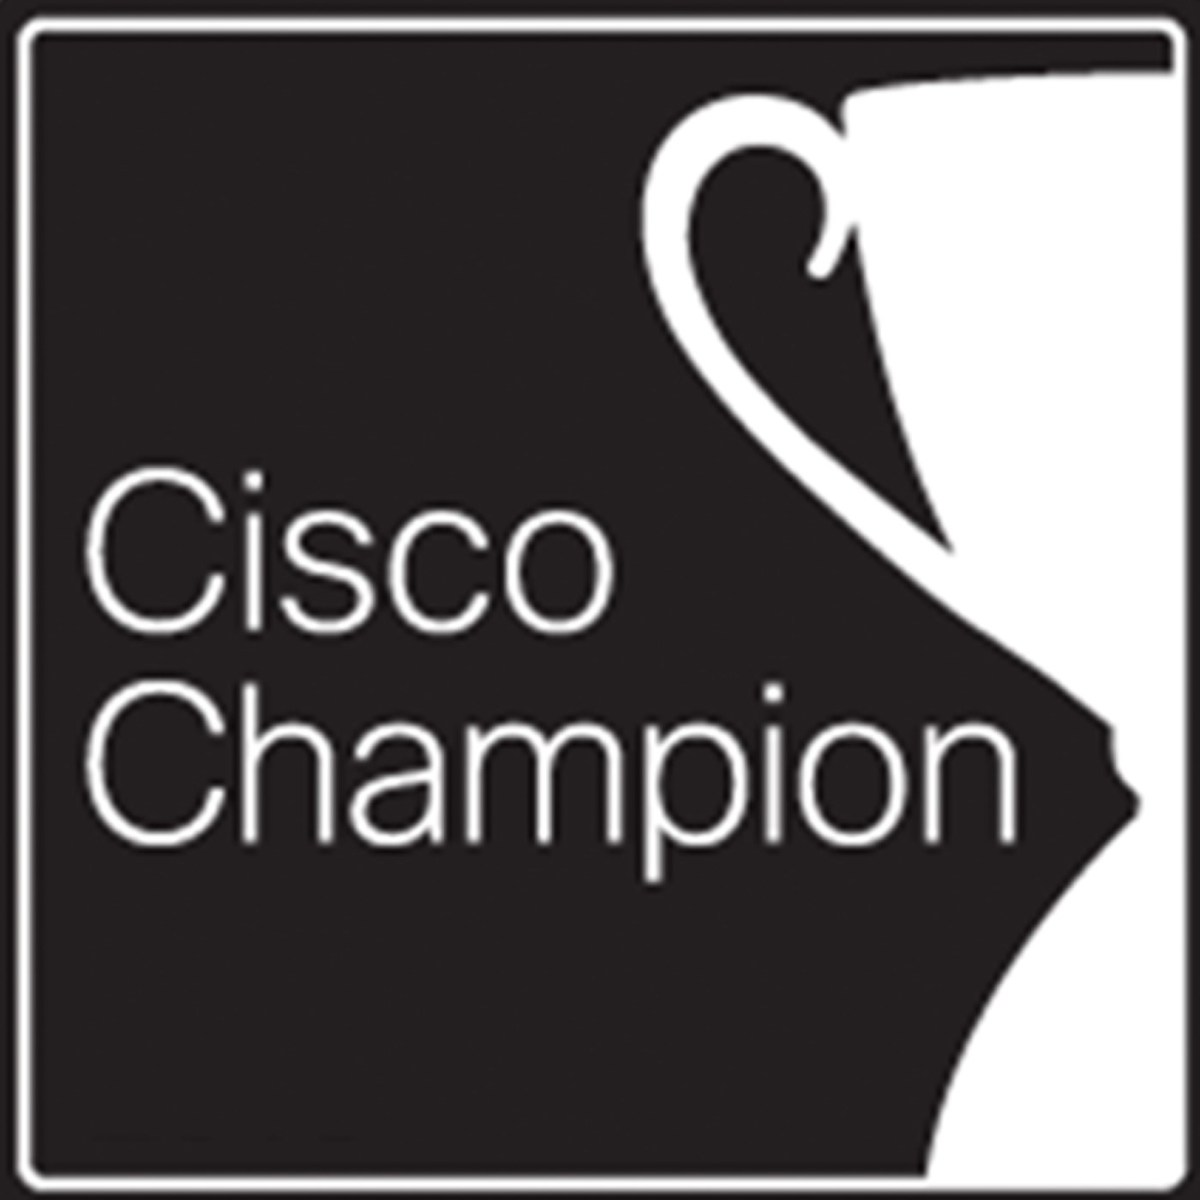 Cisco Champion icon